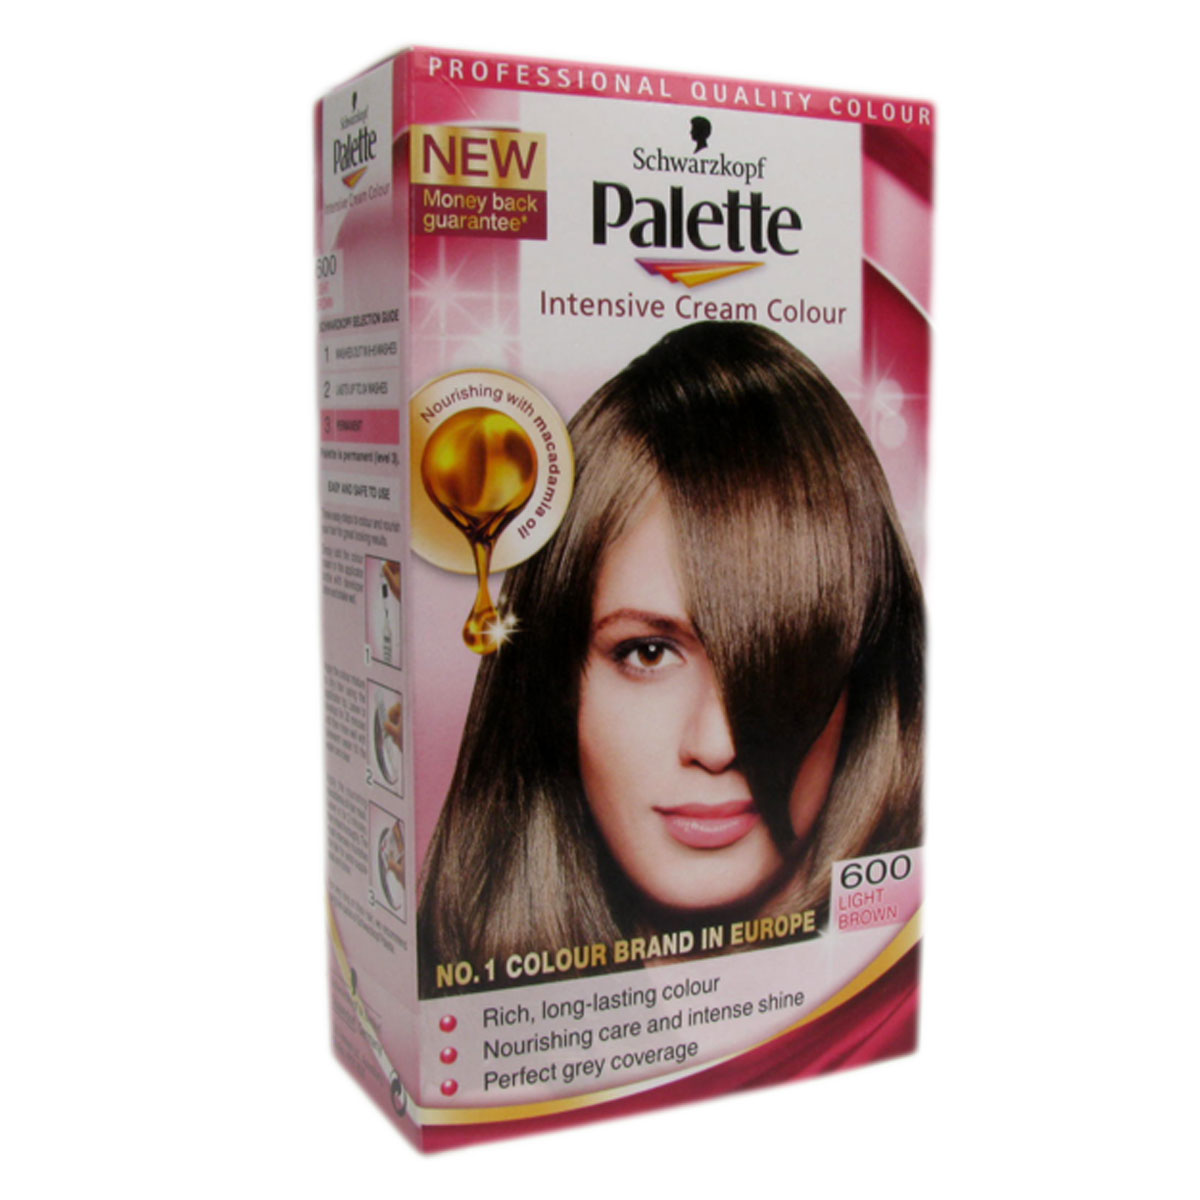 Schwarzkopf Palette Permanent Hair Colour 600 Light Brown